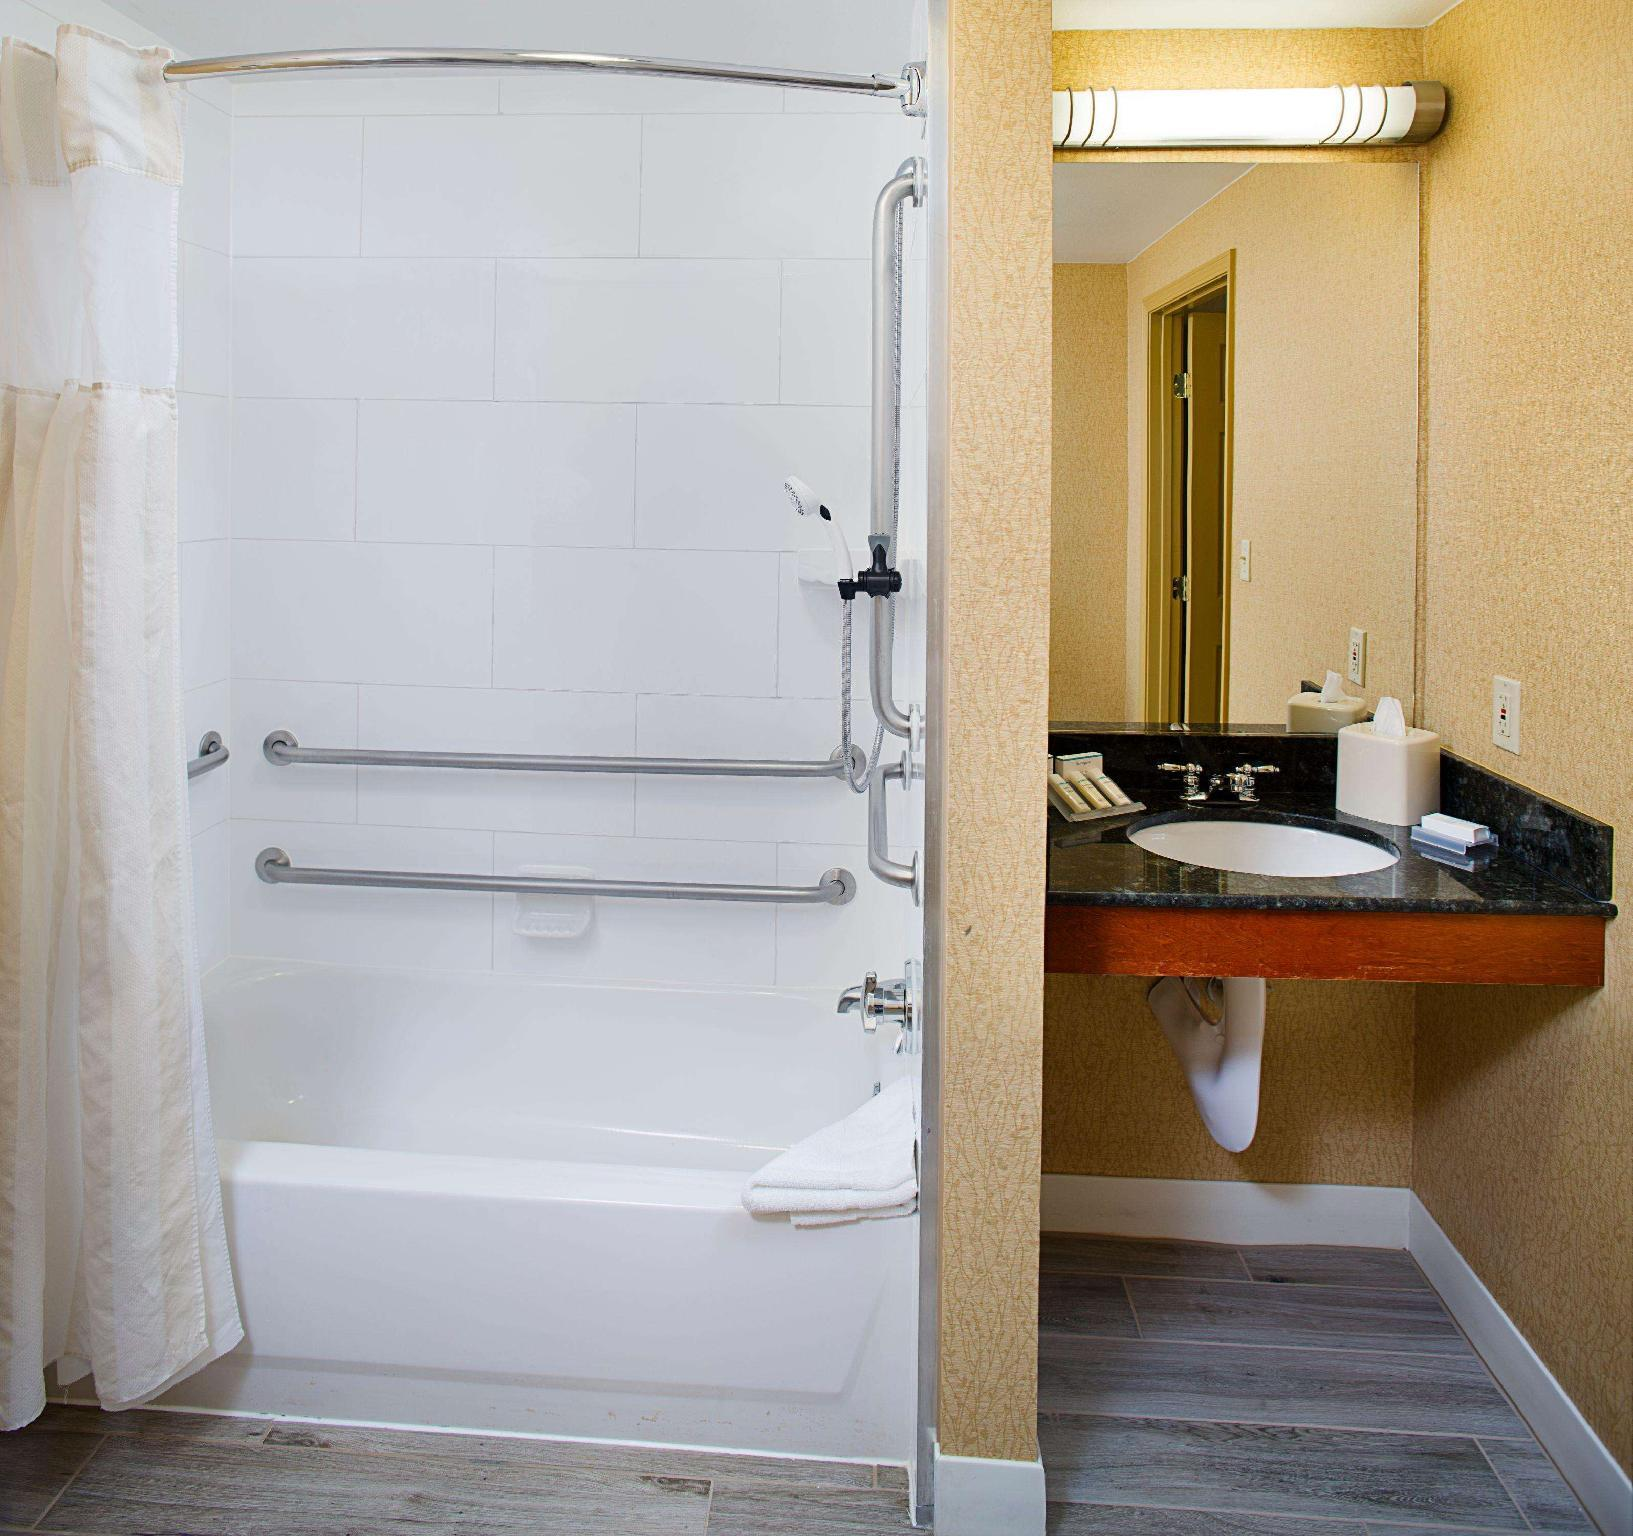 2 Double Accessible with Bathtub